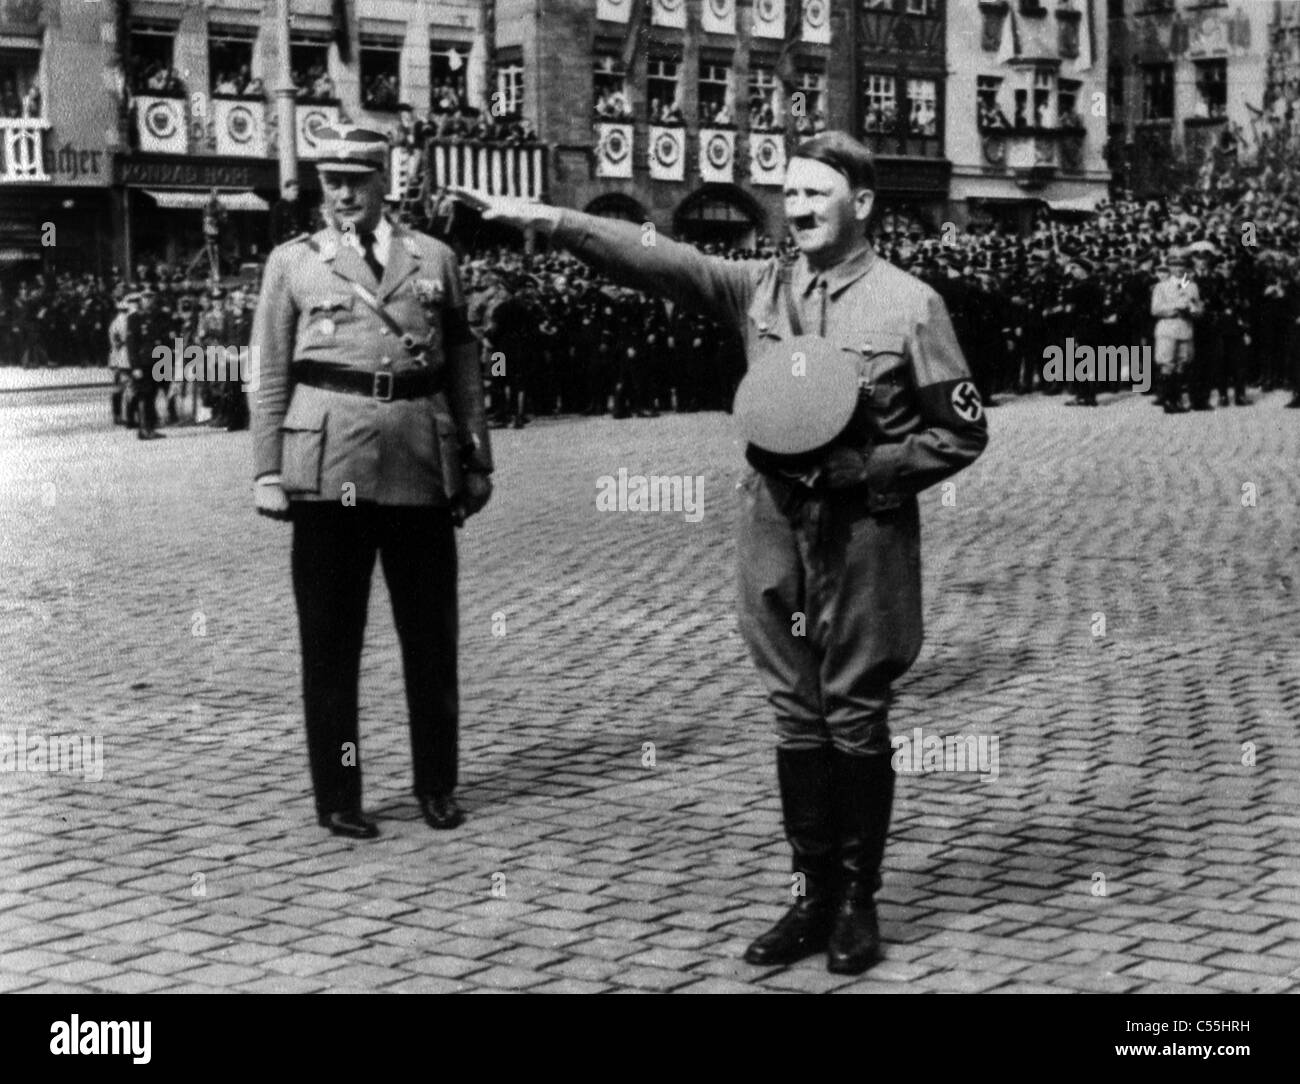 an analysis of adolf hitler as the fuhrer of nazi germany The night of the long knives – a summary posted on  germany had become a  one-party state with hitler its leader, and soon its dictator.